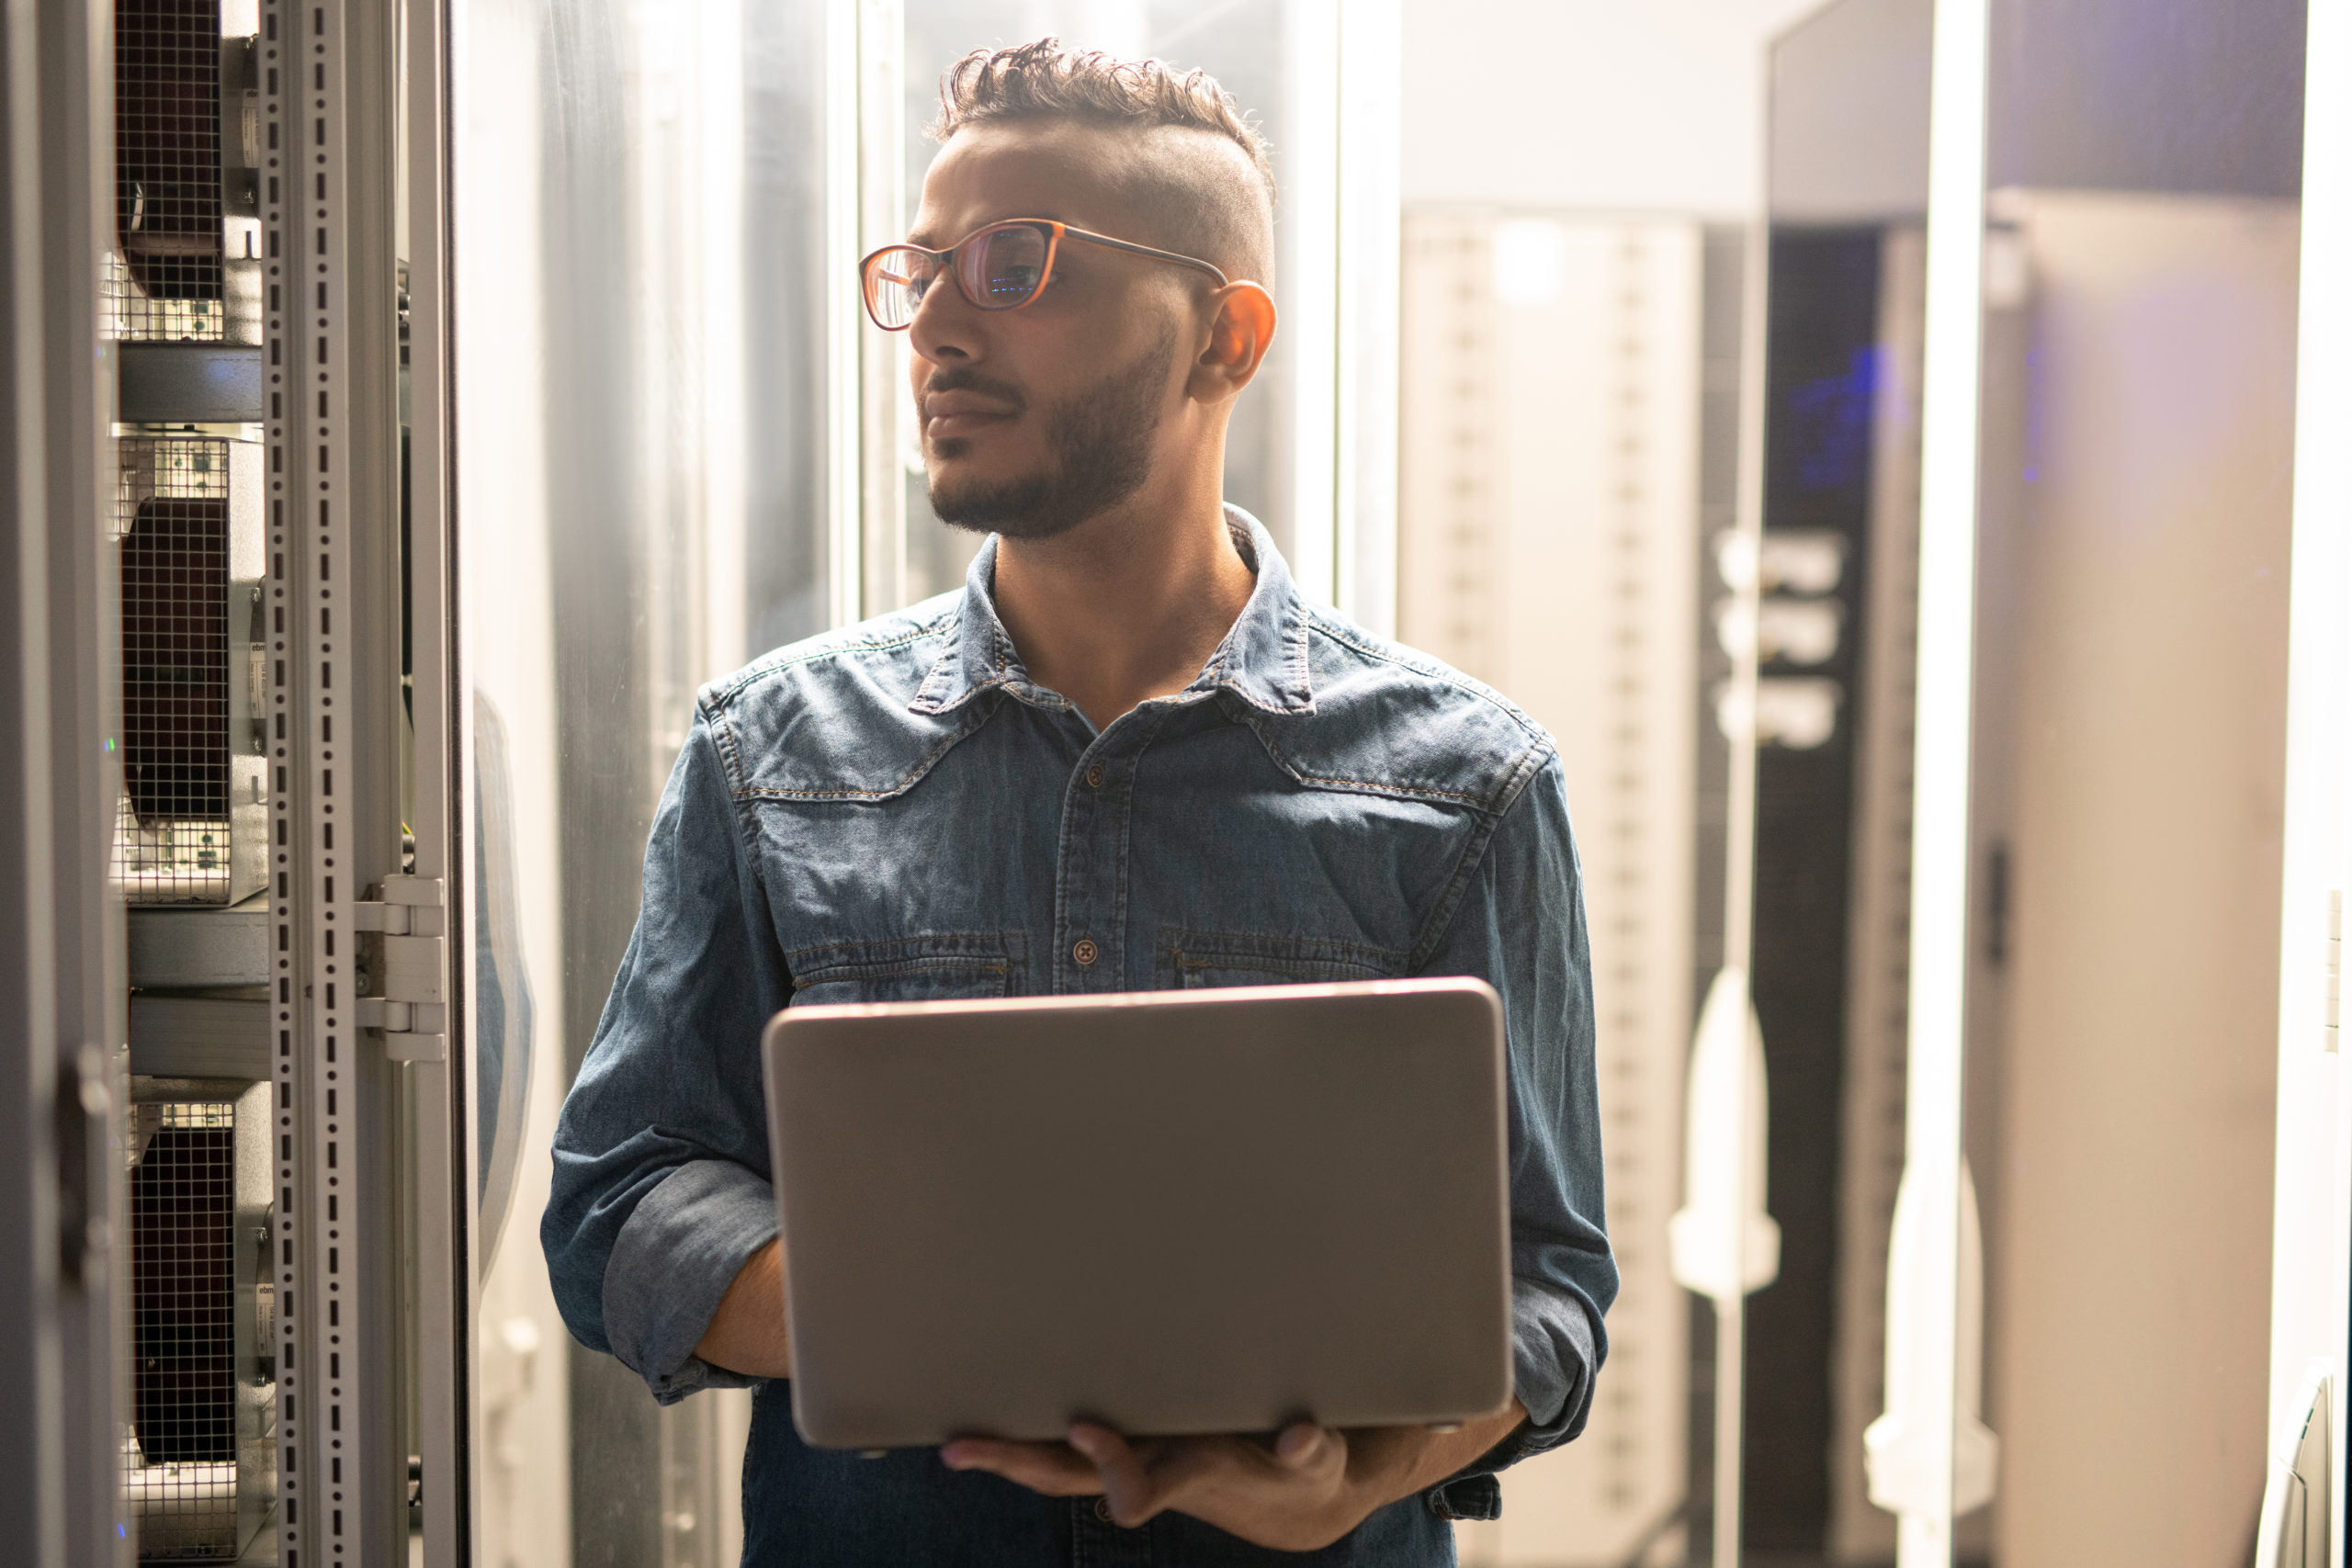 Serious confident young Arabian IT engineer with beard standing in data center and using laptop while providing safety of network server